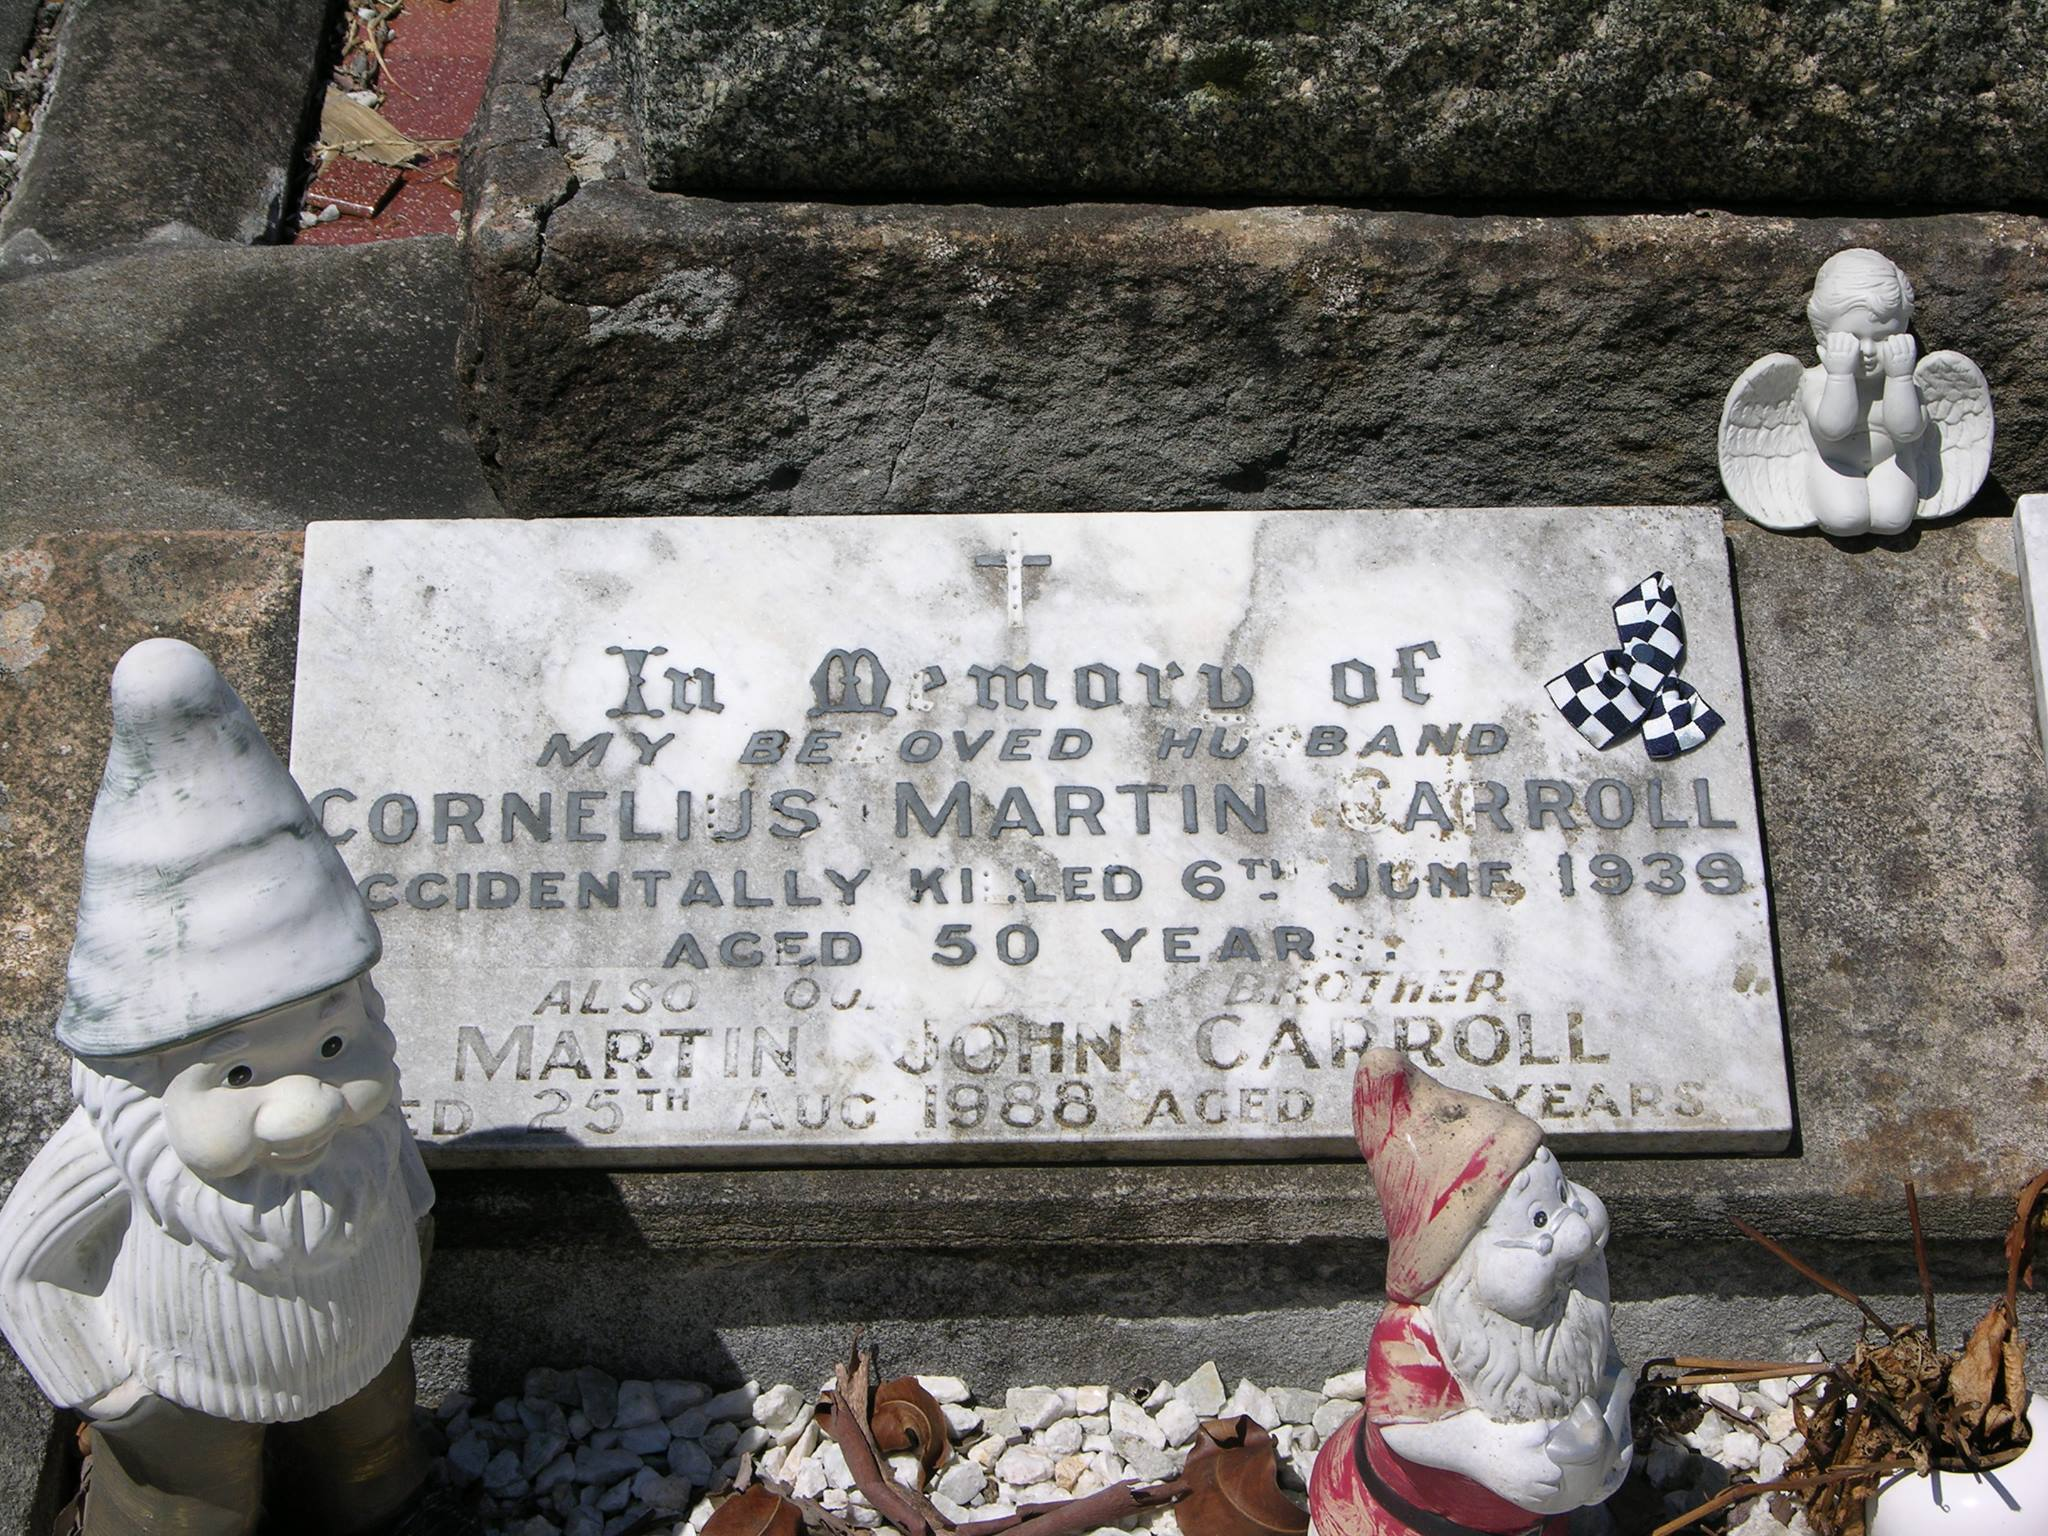 In memory of my beloved husband Cornelius Martin CARROLL. Accidentally killed 6th June 1939. Aged 50 years. Also our beloved brother Martin John CARROLL Died 25th August 1988 aged 71 years